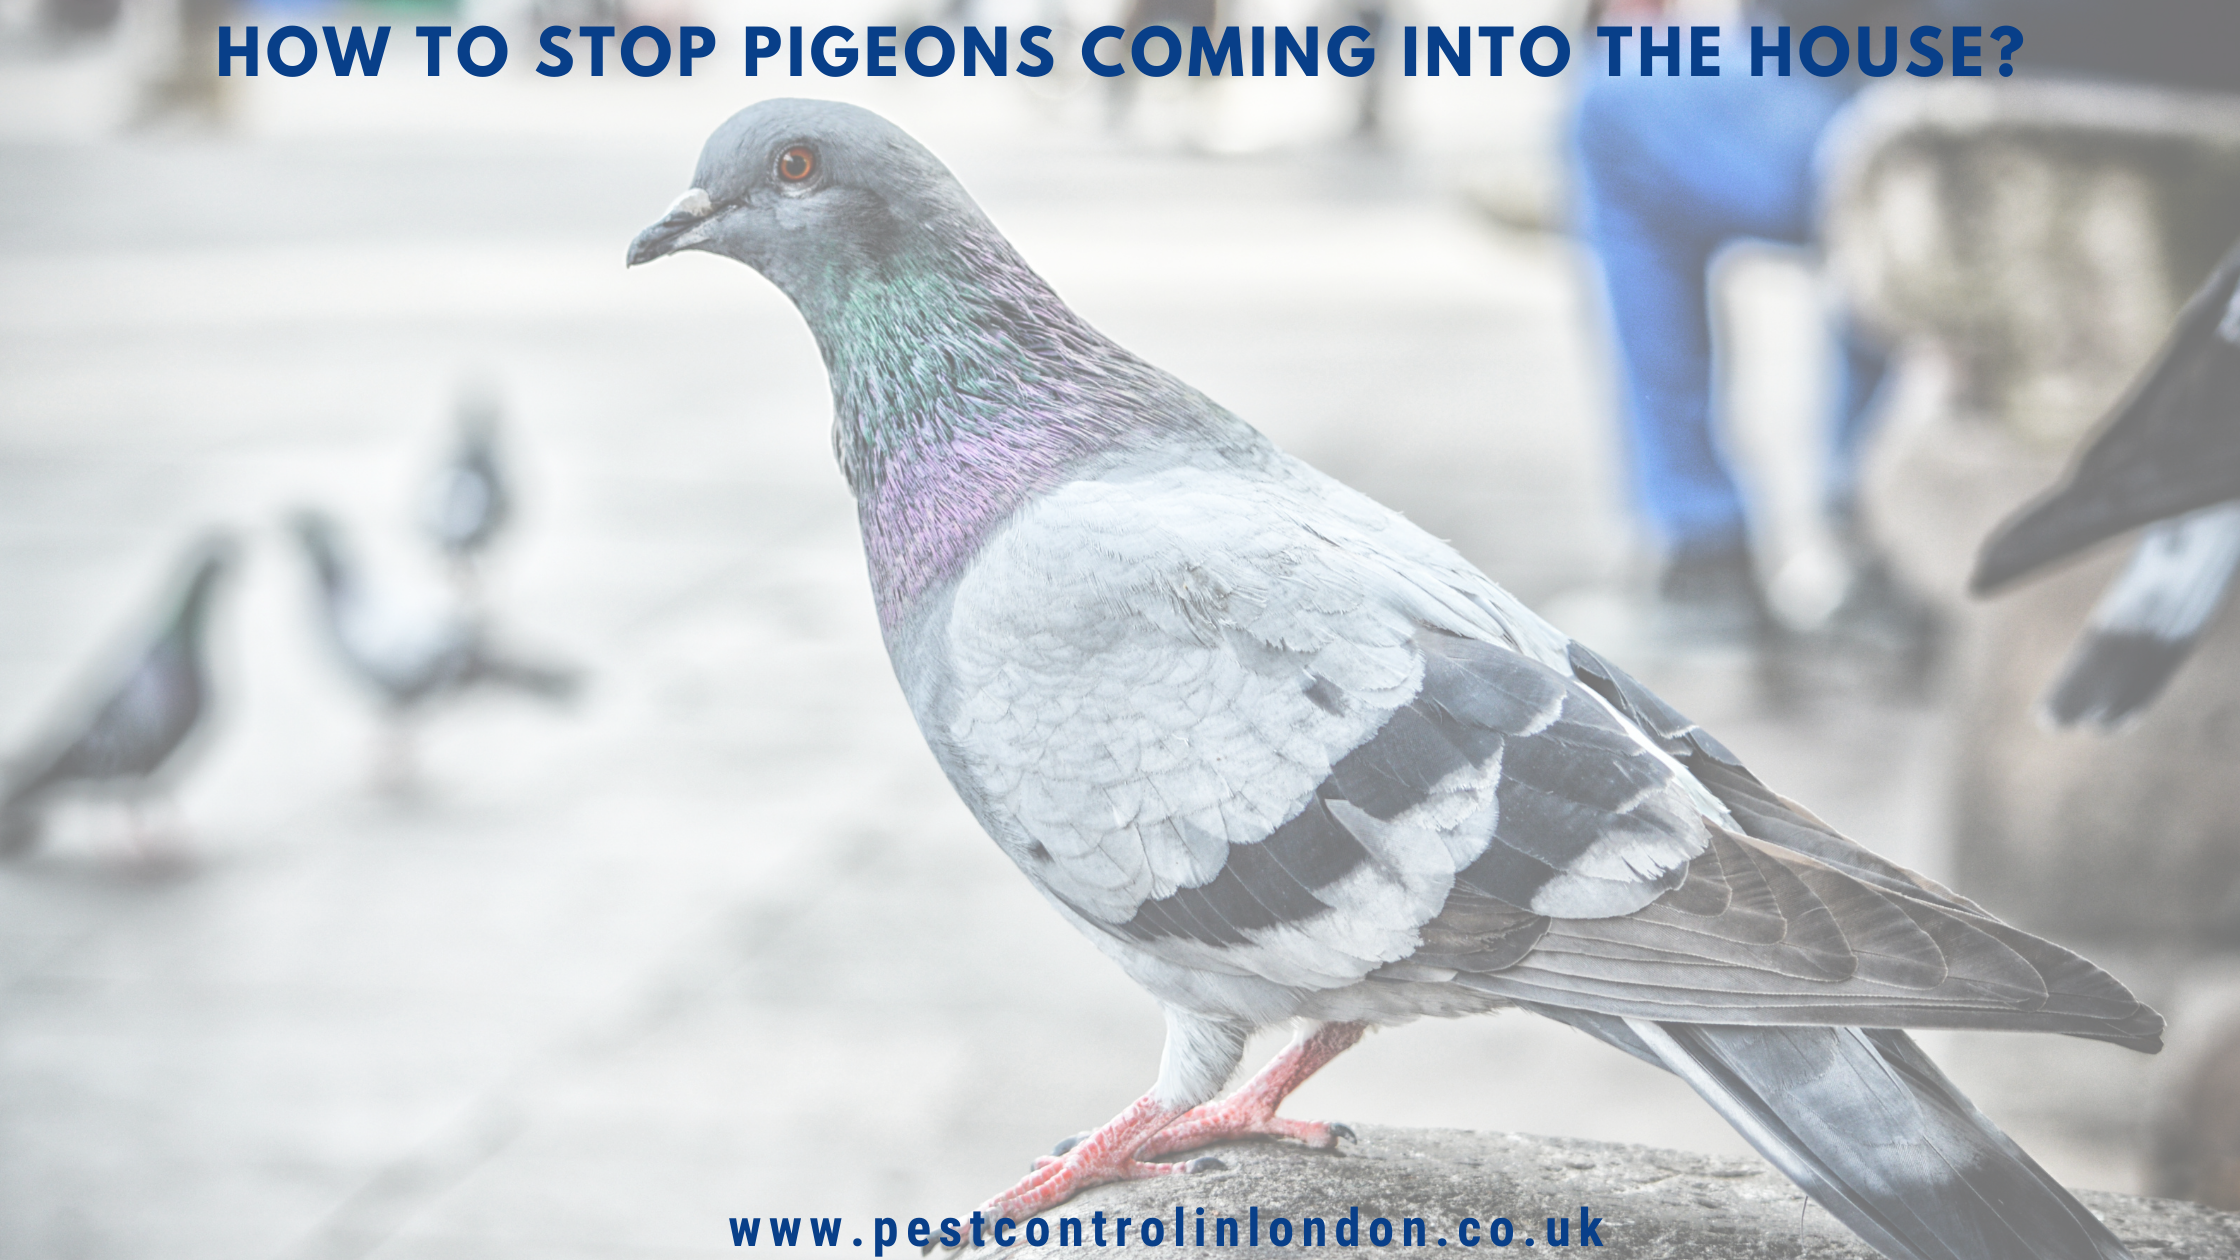 How to stop pigeons coming into the house?